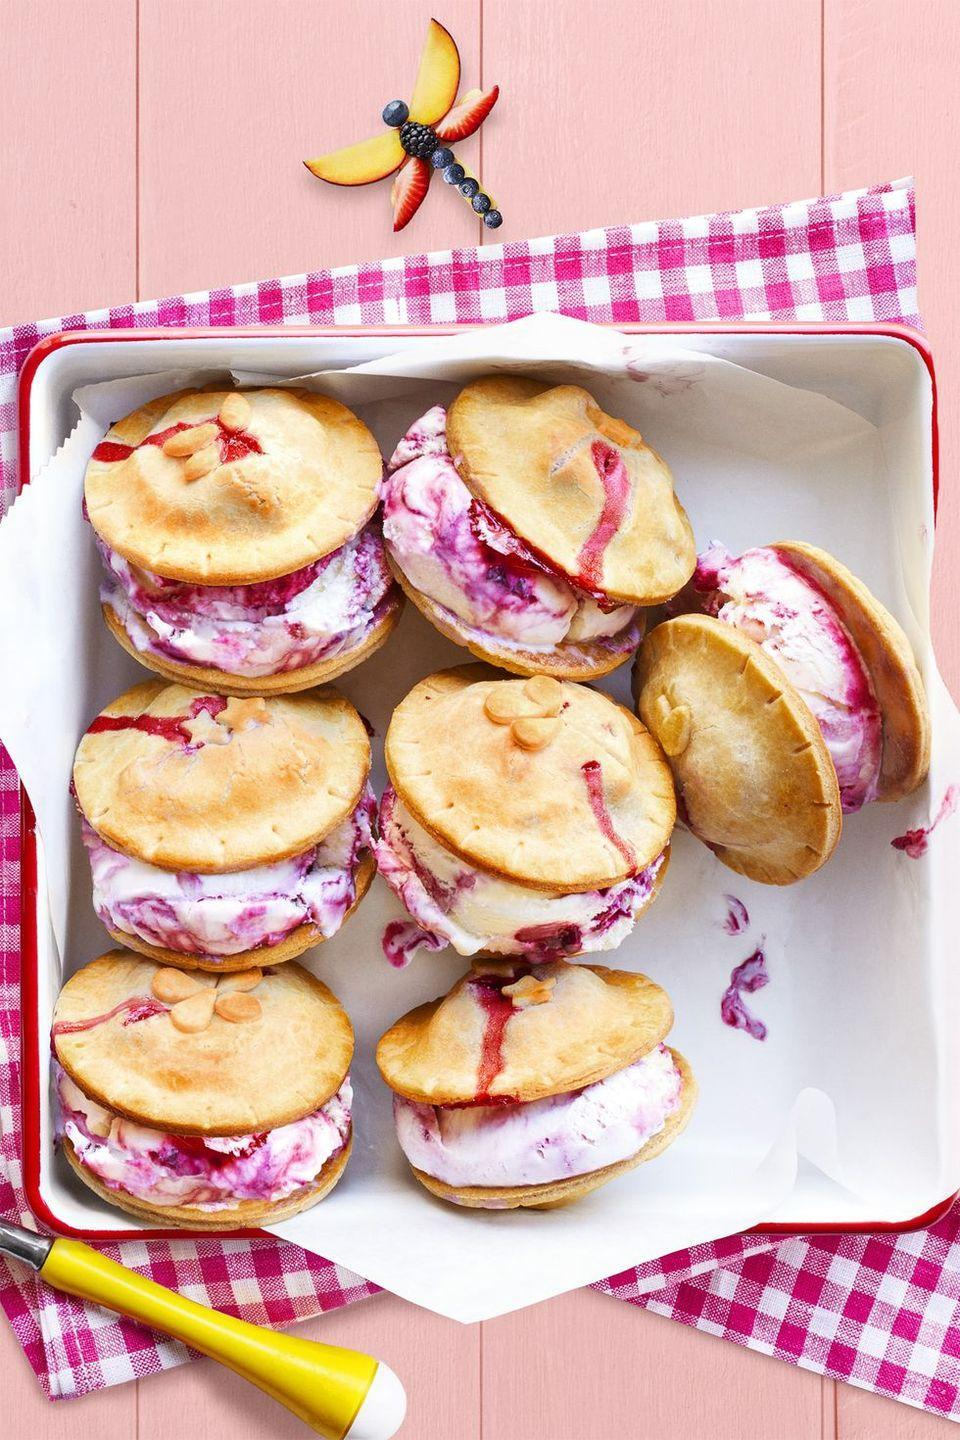 """<p>All your favorite summer treats in one berry-filled handful.</p><p><em><a href=""""https://www.womansday.com/food-recipes/food-drinks/recipes/a59001/fresh-berry-ice-cream-piewiches-recipe/"""" rel=""""nofollow noopener"""" target=""""_blank"""" data-ylk=""""slk:Get the recipe from Woman's Day »"""" class=""""link rapid-noclick-resp"""">Get the recipe from Woman's Day »</a></em></p>"""